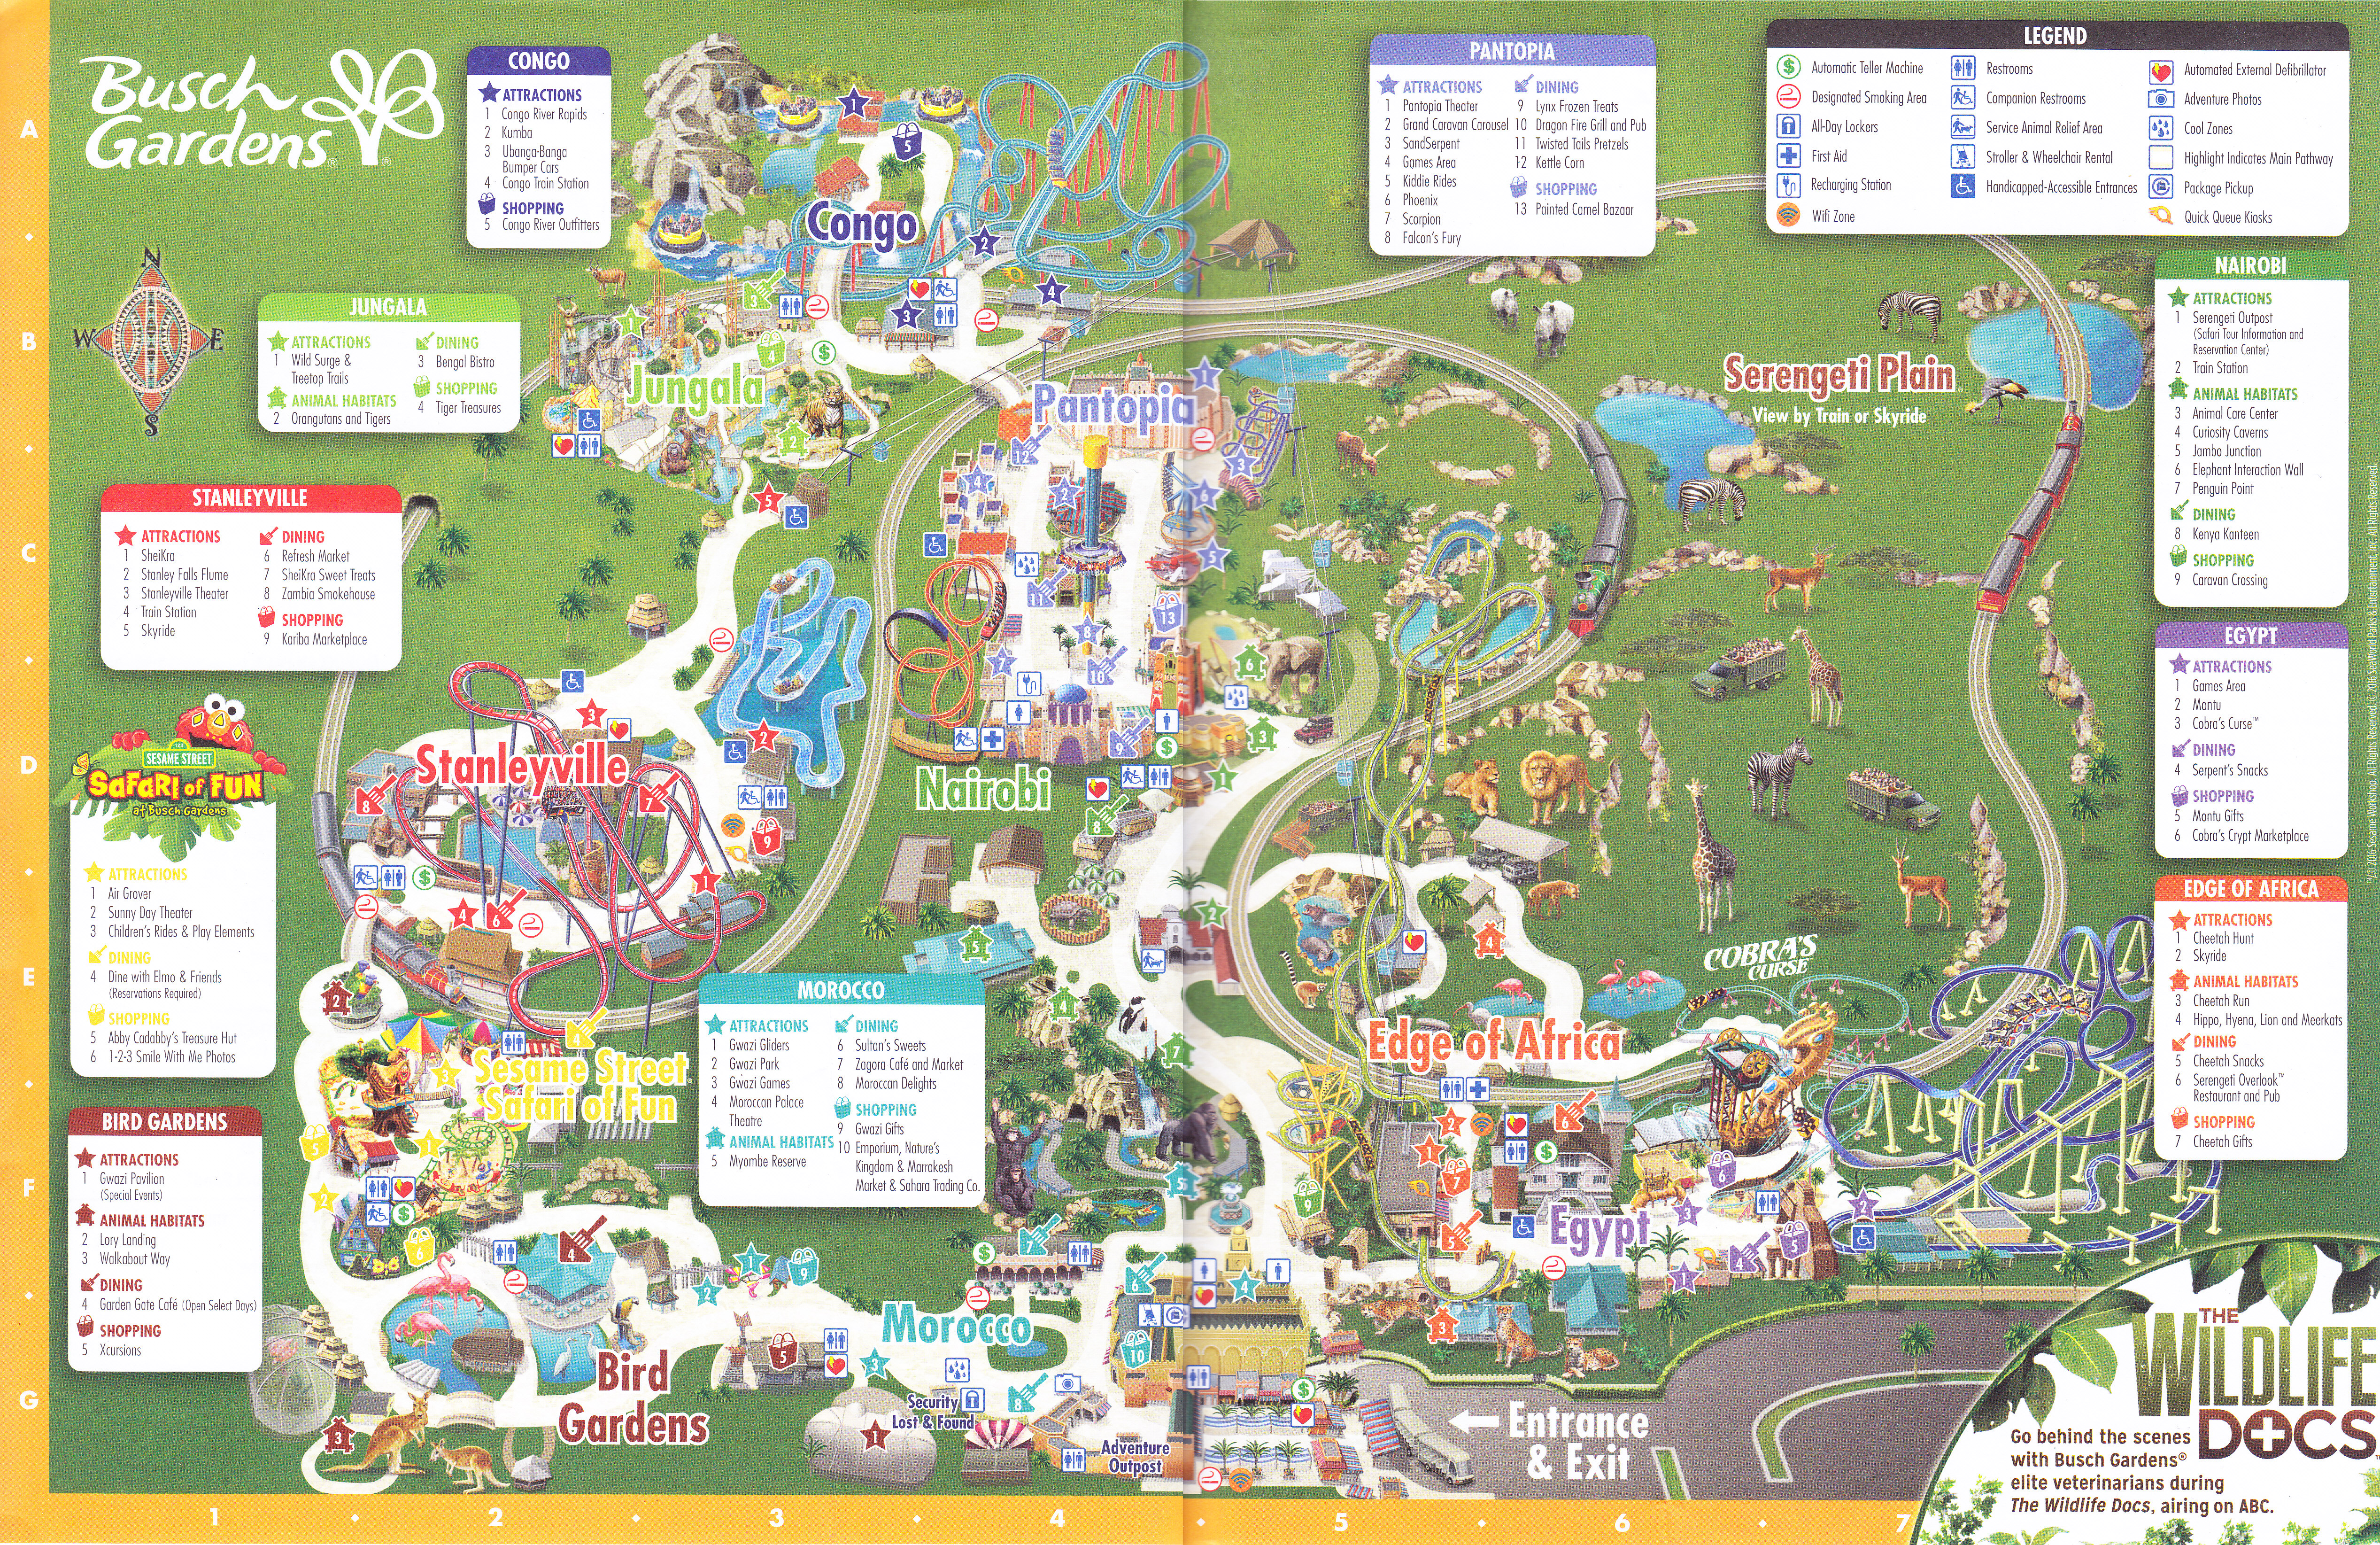 Pretty Busch Gardens Tampa   Park Map With Glamorous Photo By Larrygator With Adorable Hm Garden Collection Dress Also Where Are The Hanging Gardens Of Babylon In Addition Welwyn Garden City Ambulance Station And Four In A Row Garden Game As Well As Garden City Contact Details Additionally Fiesta Garden Beach Sicily From Themeparkreviewcom With   Glamorous Busch Gardens Tampa   Park Map With Adorable Photo By Larrygator And Pretty Hm Garden Collection Dress Also Where Are The Hanging Gardens Of Babylon In Addition Welwyn Garden City Ambulance Station From Themeparkreviewcom